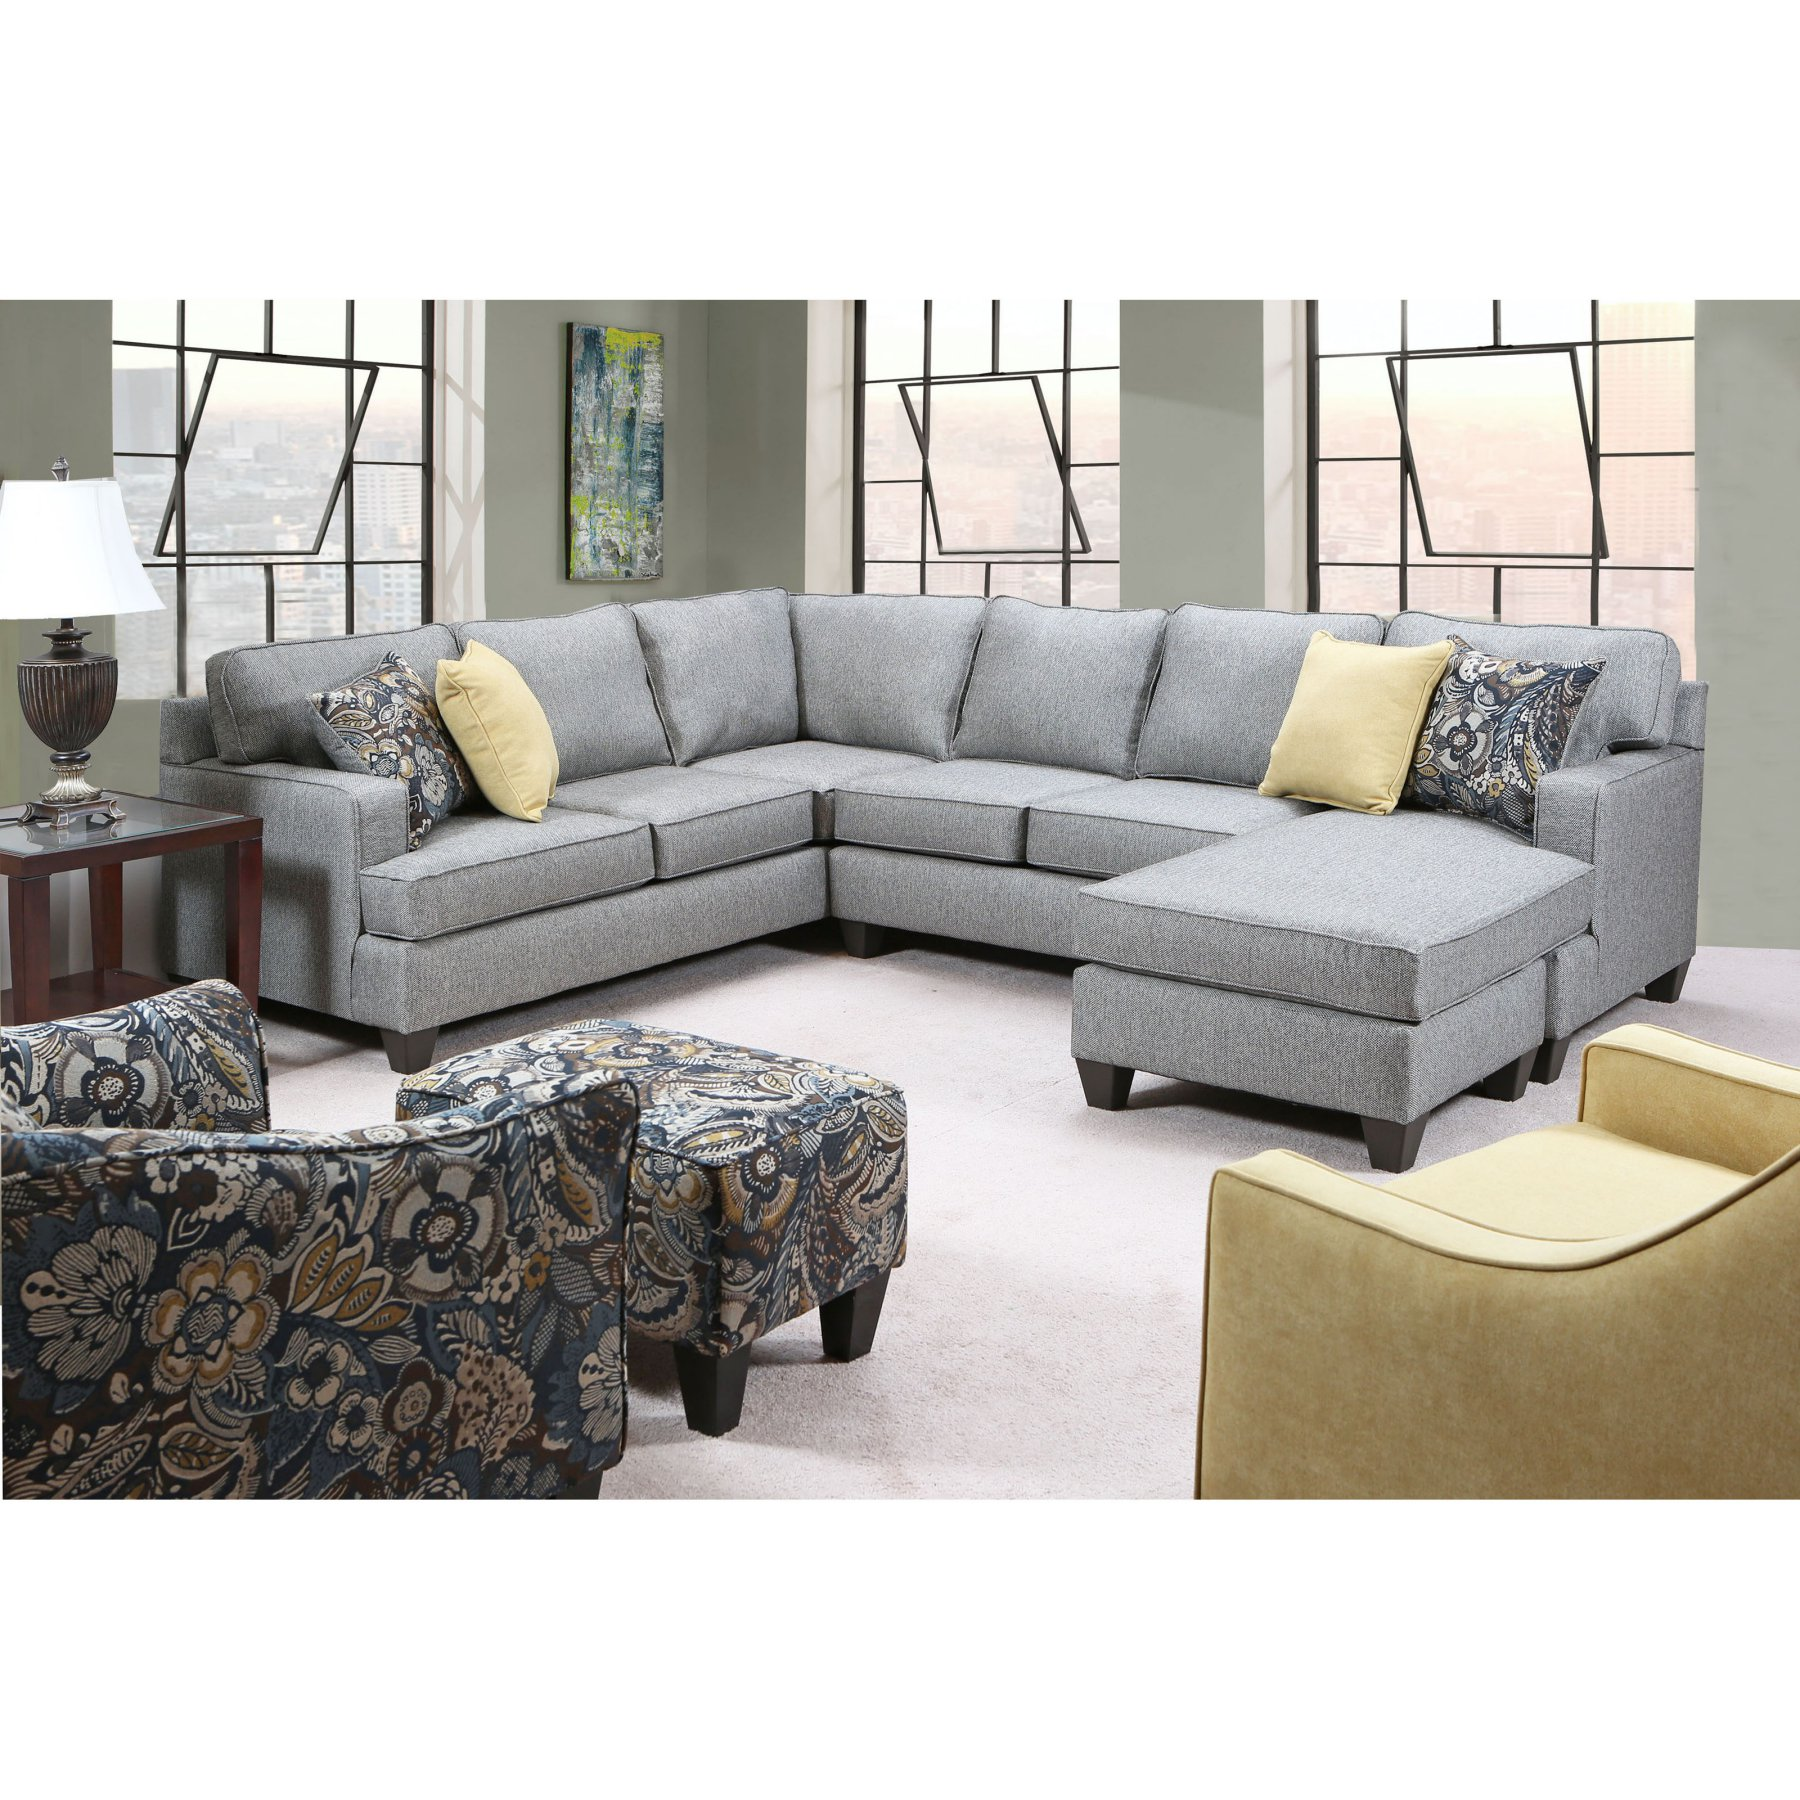 Chelsea Home Furniture Damari 3 Piece Sectional Sofa 781695 L32